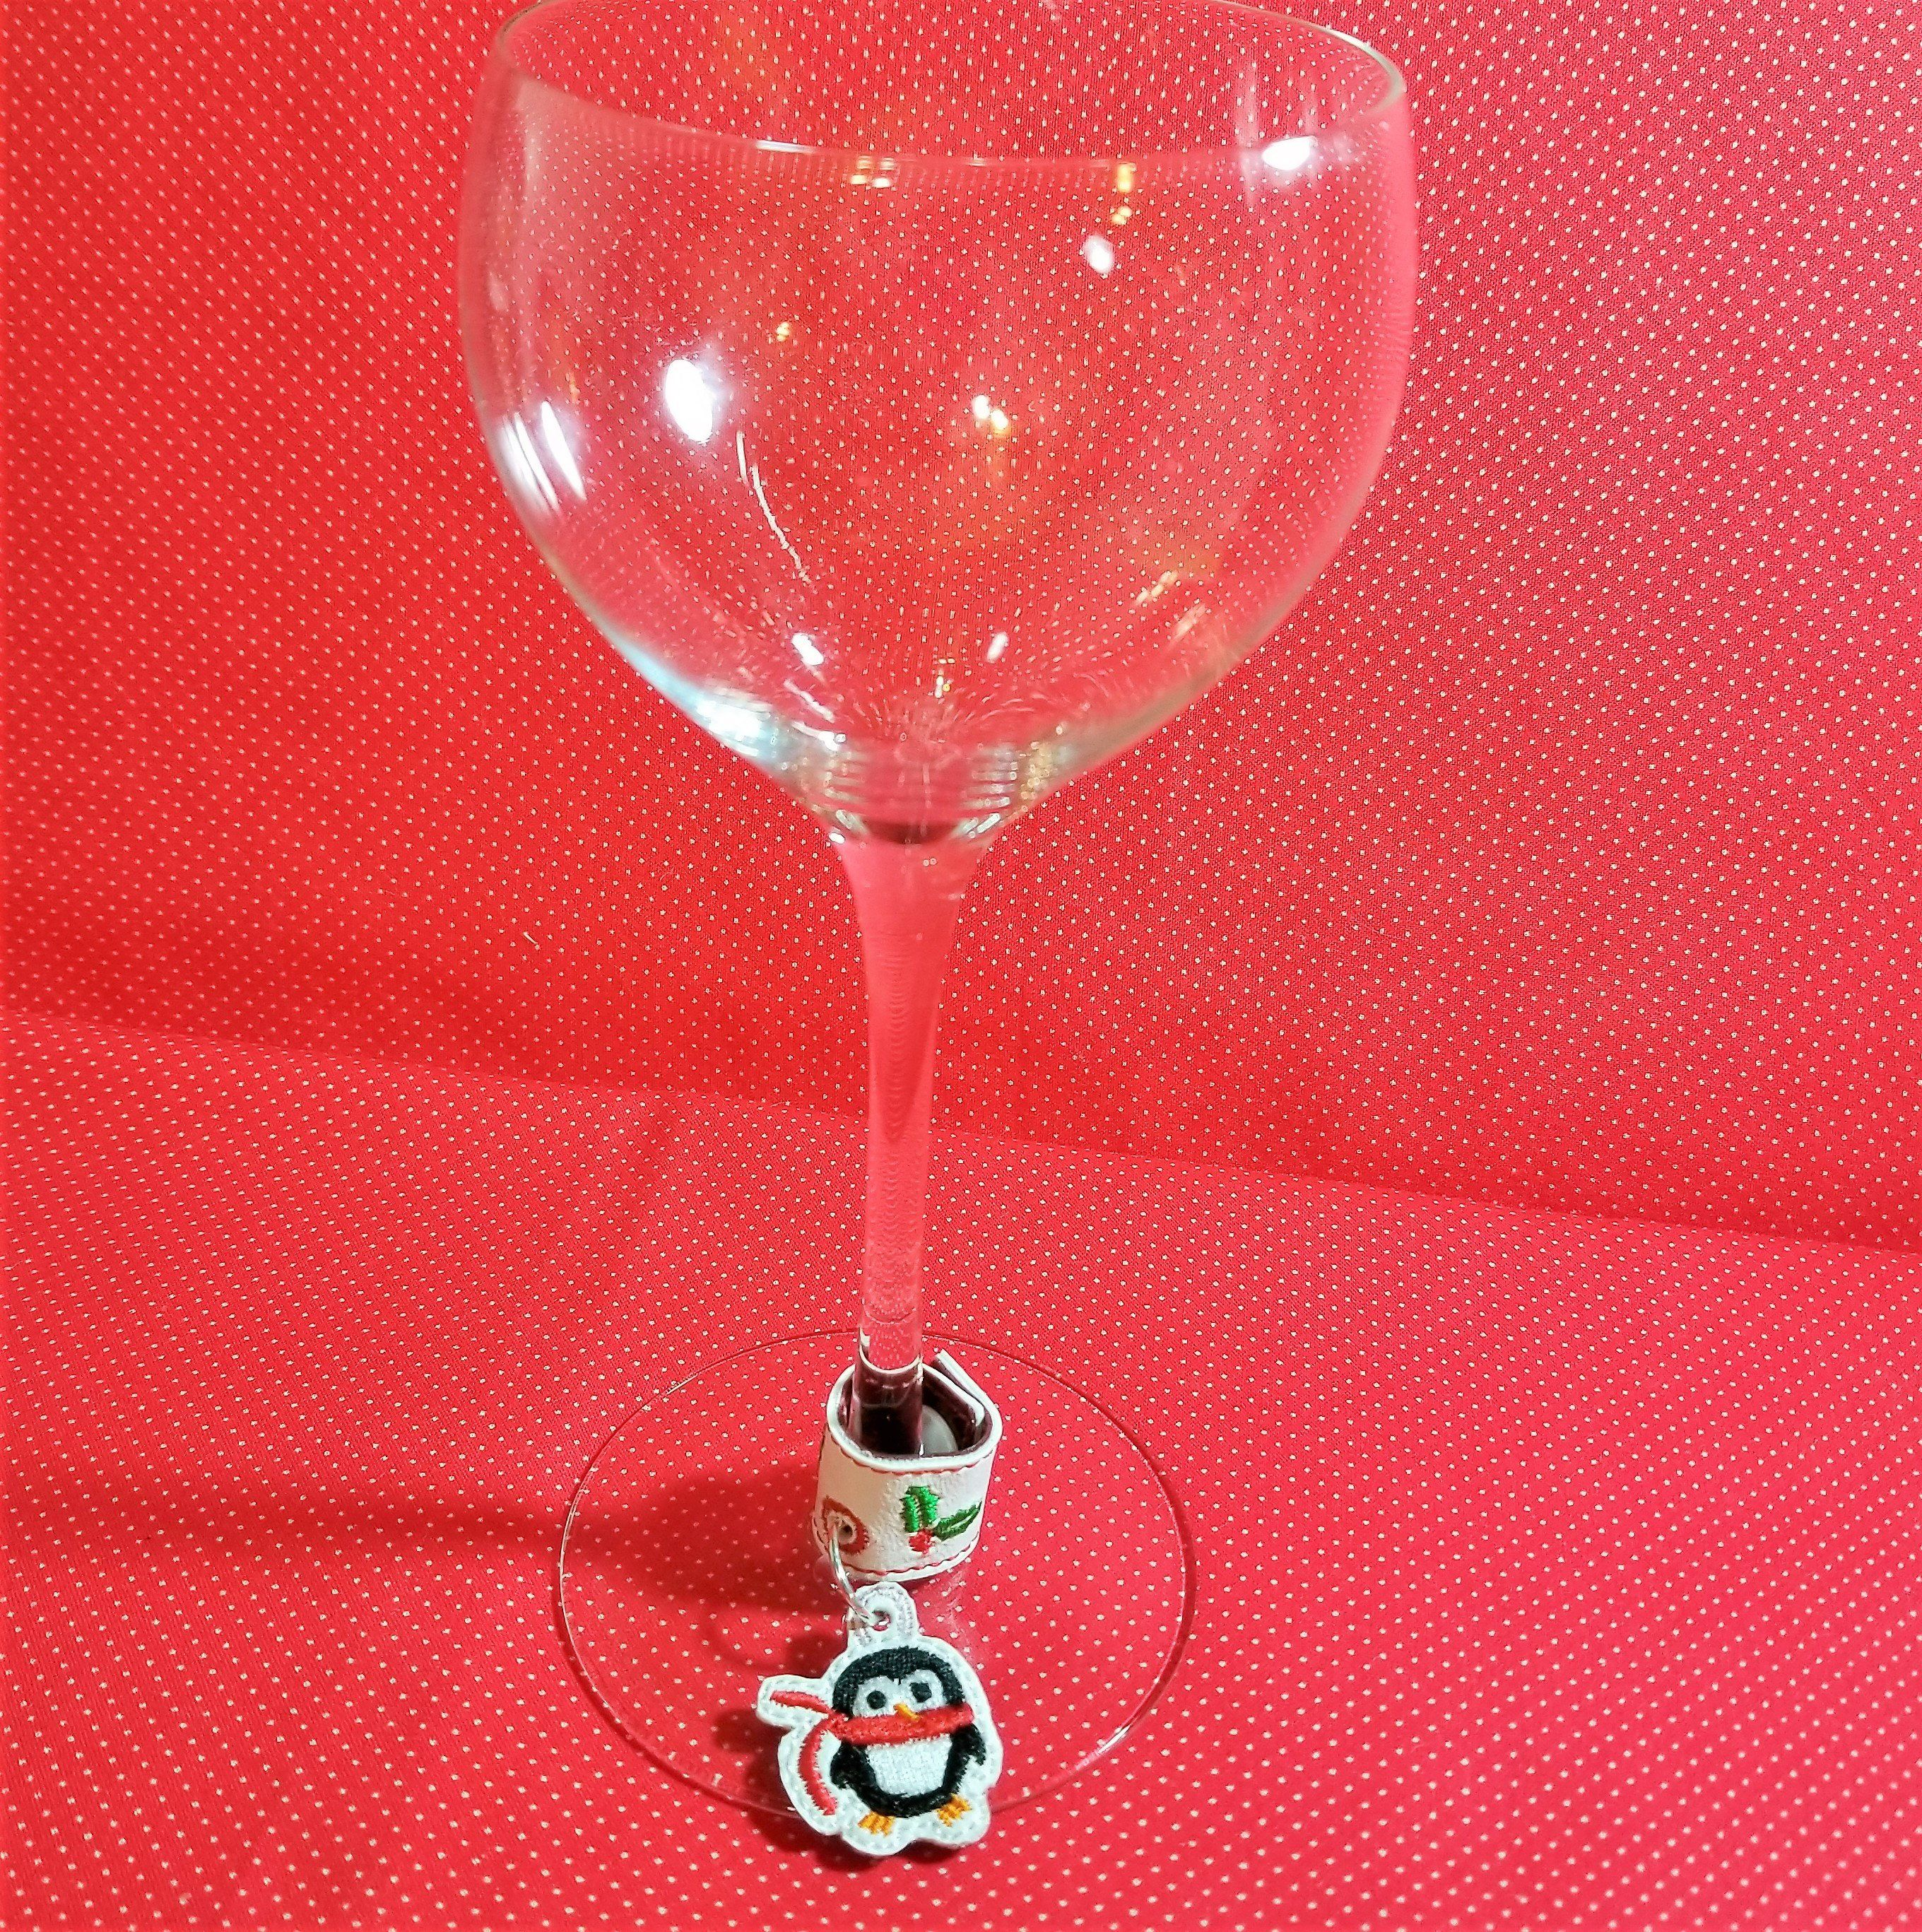 Penguin Charm Embroidery Design Ith Design For Bag Tags Etsy Wine Glass Charms Embroidery Designs Ith Designs